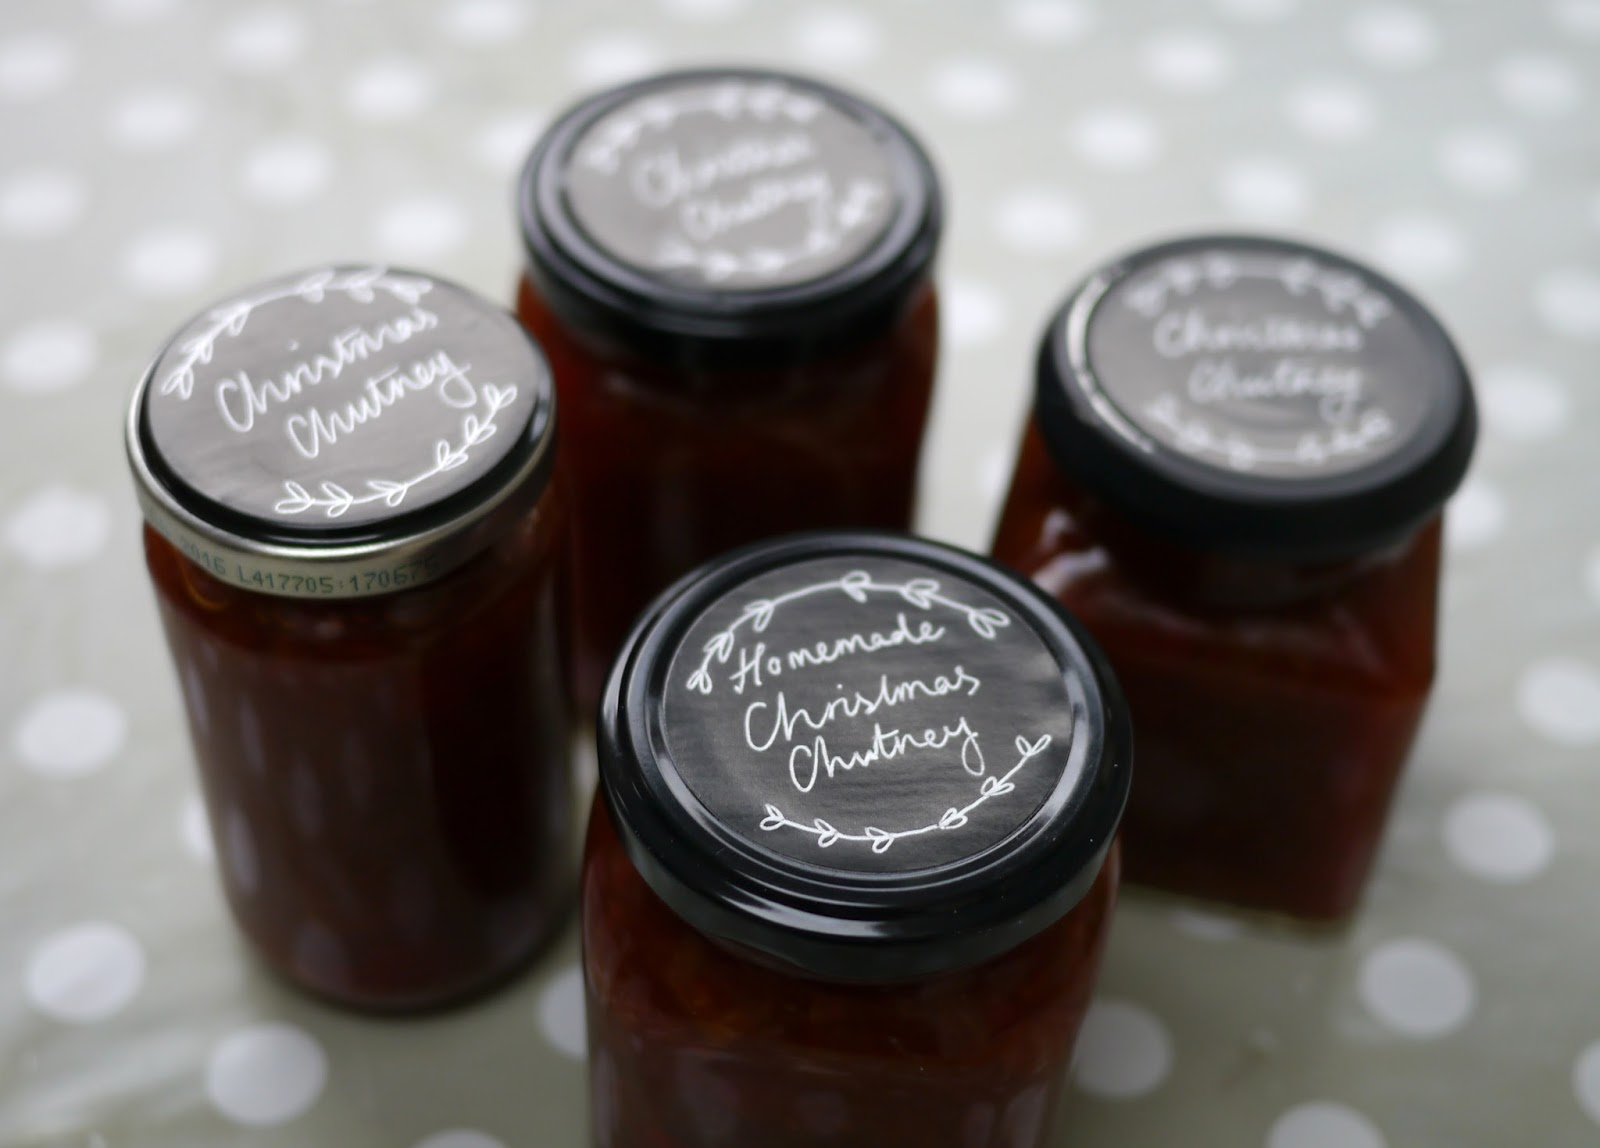 Packaging for Homemade Christmas Chutney Jar Lid  Stickers